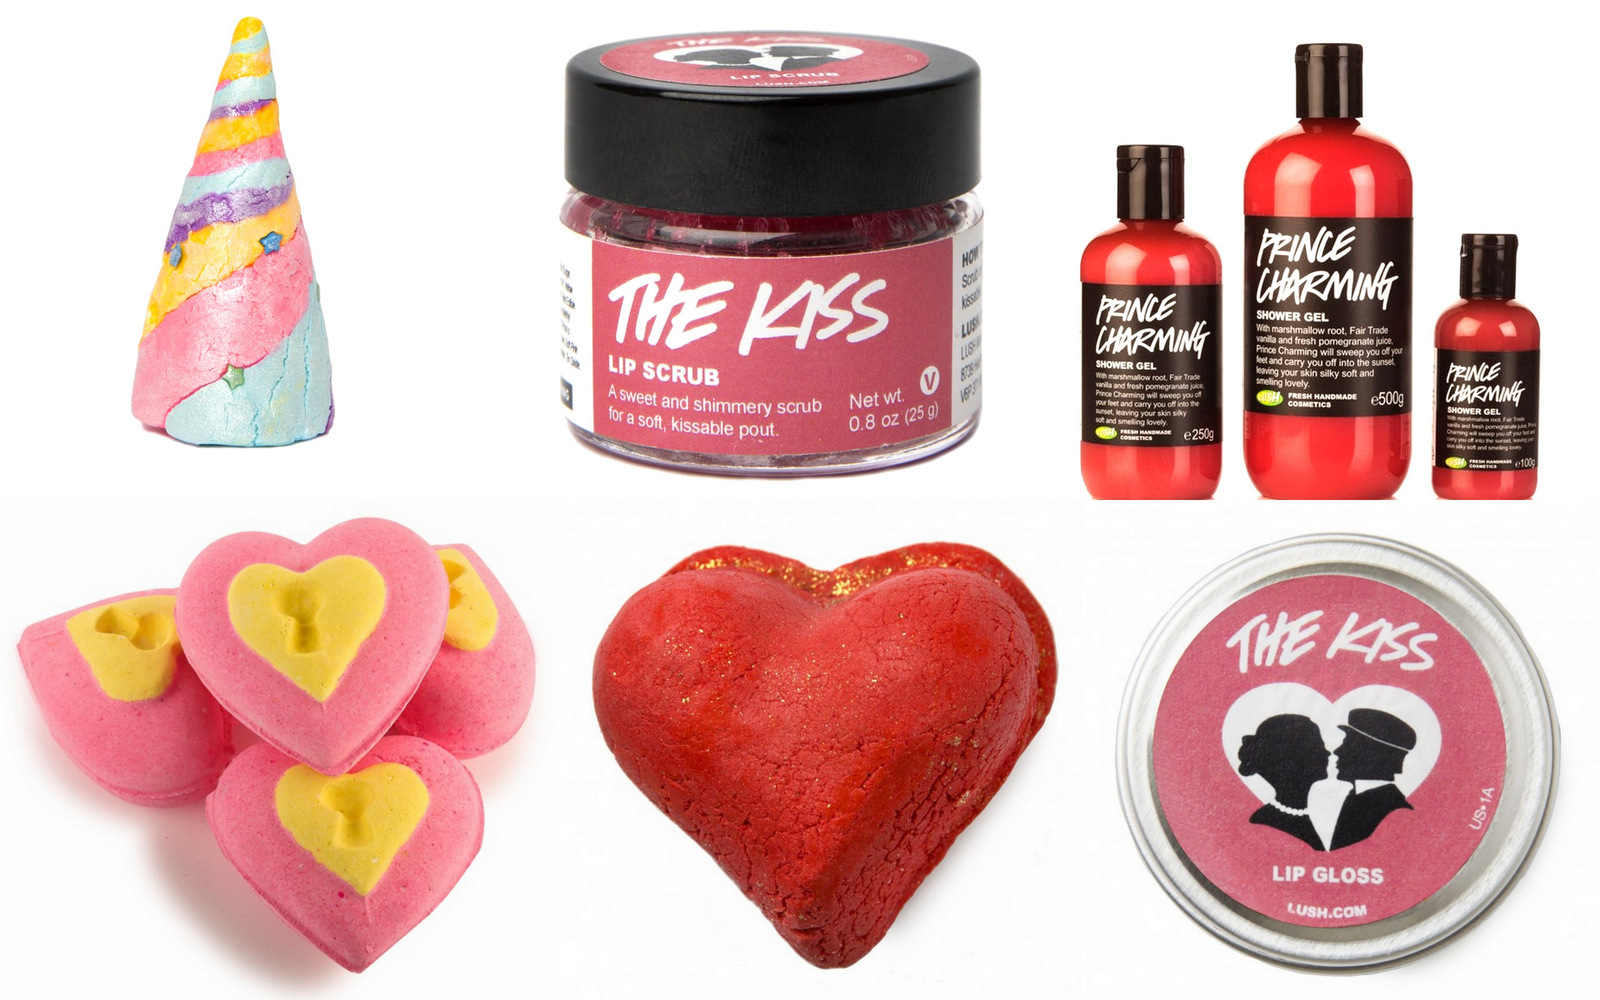 Lush Valentines Day 2015 + Bubble Bath Day